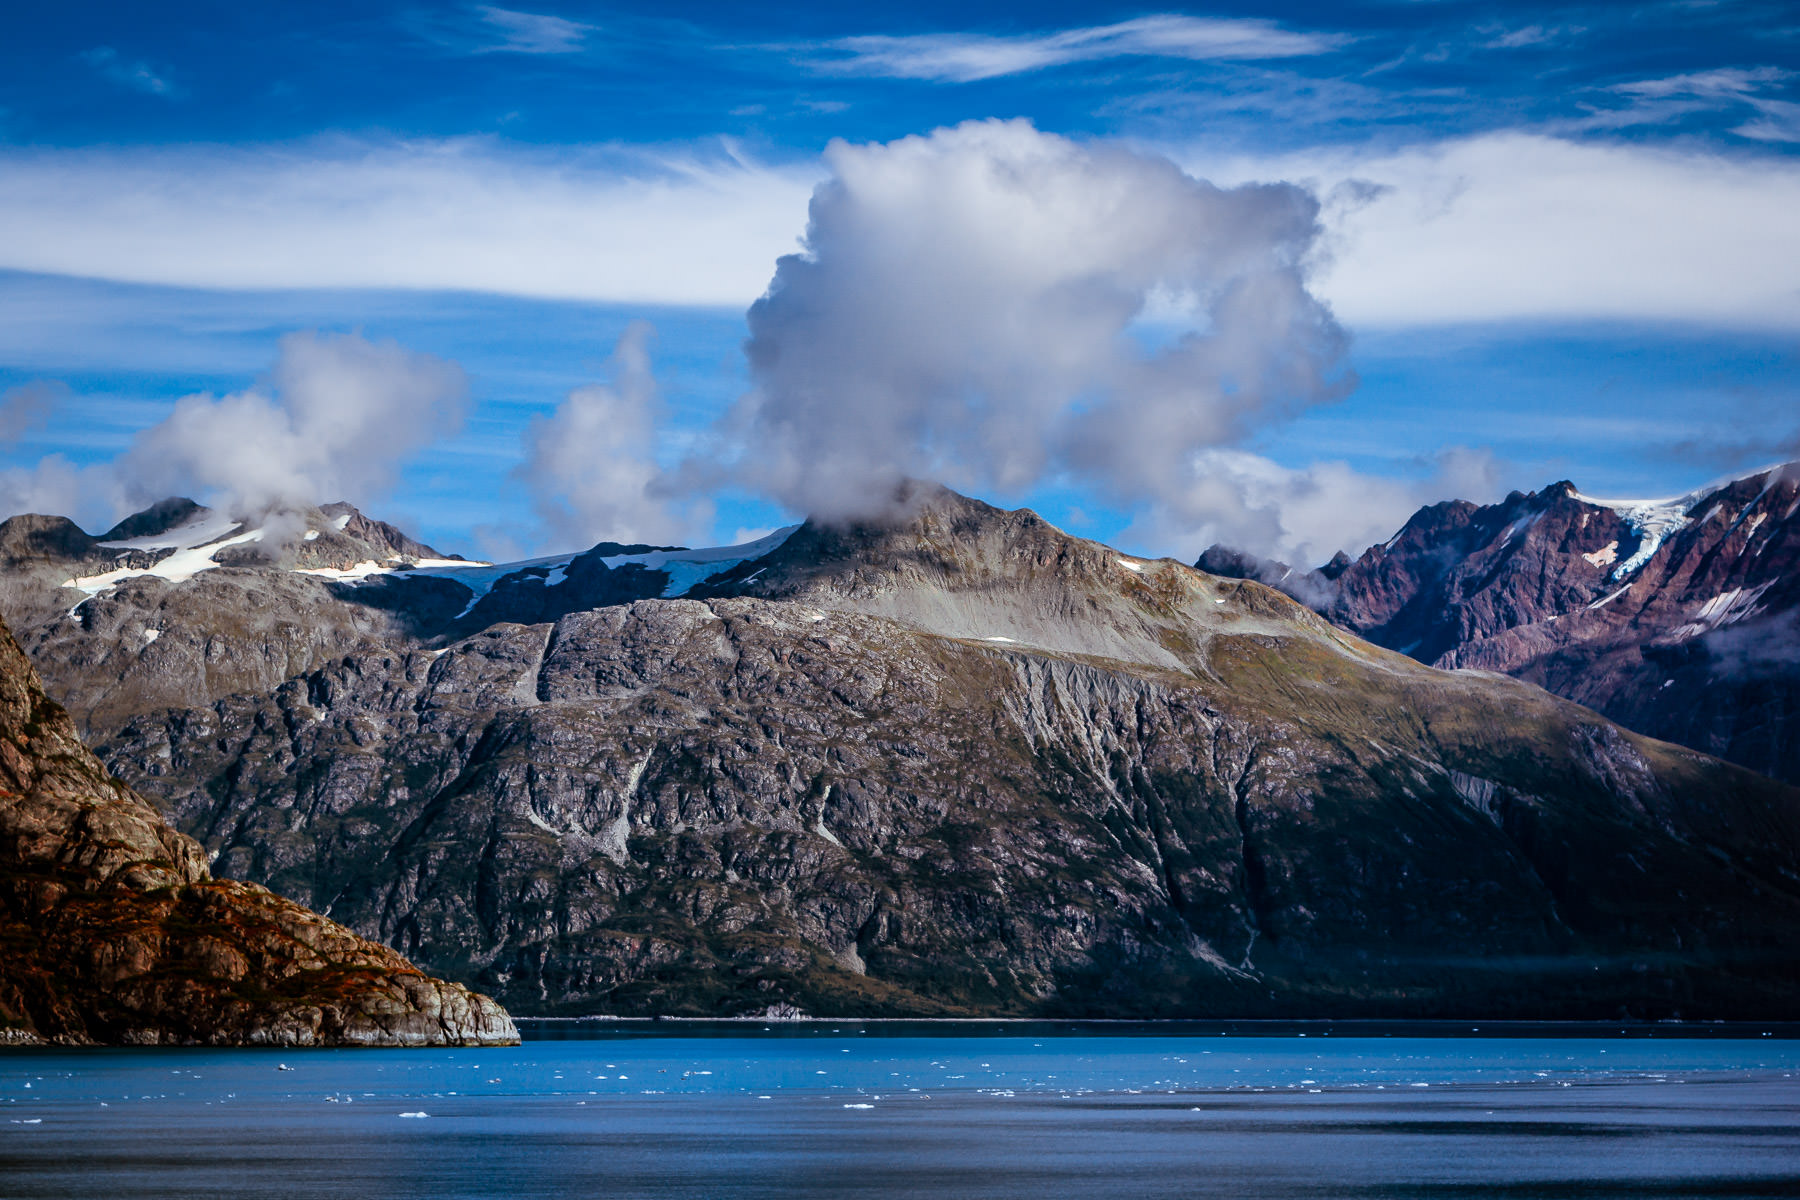 Mountains rise from the shore of Alaska's Glacier Bay to reach to the clouds above.